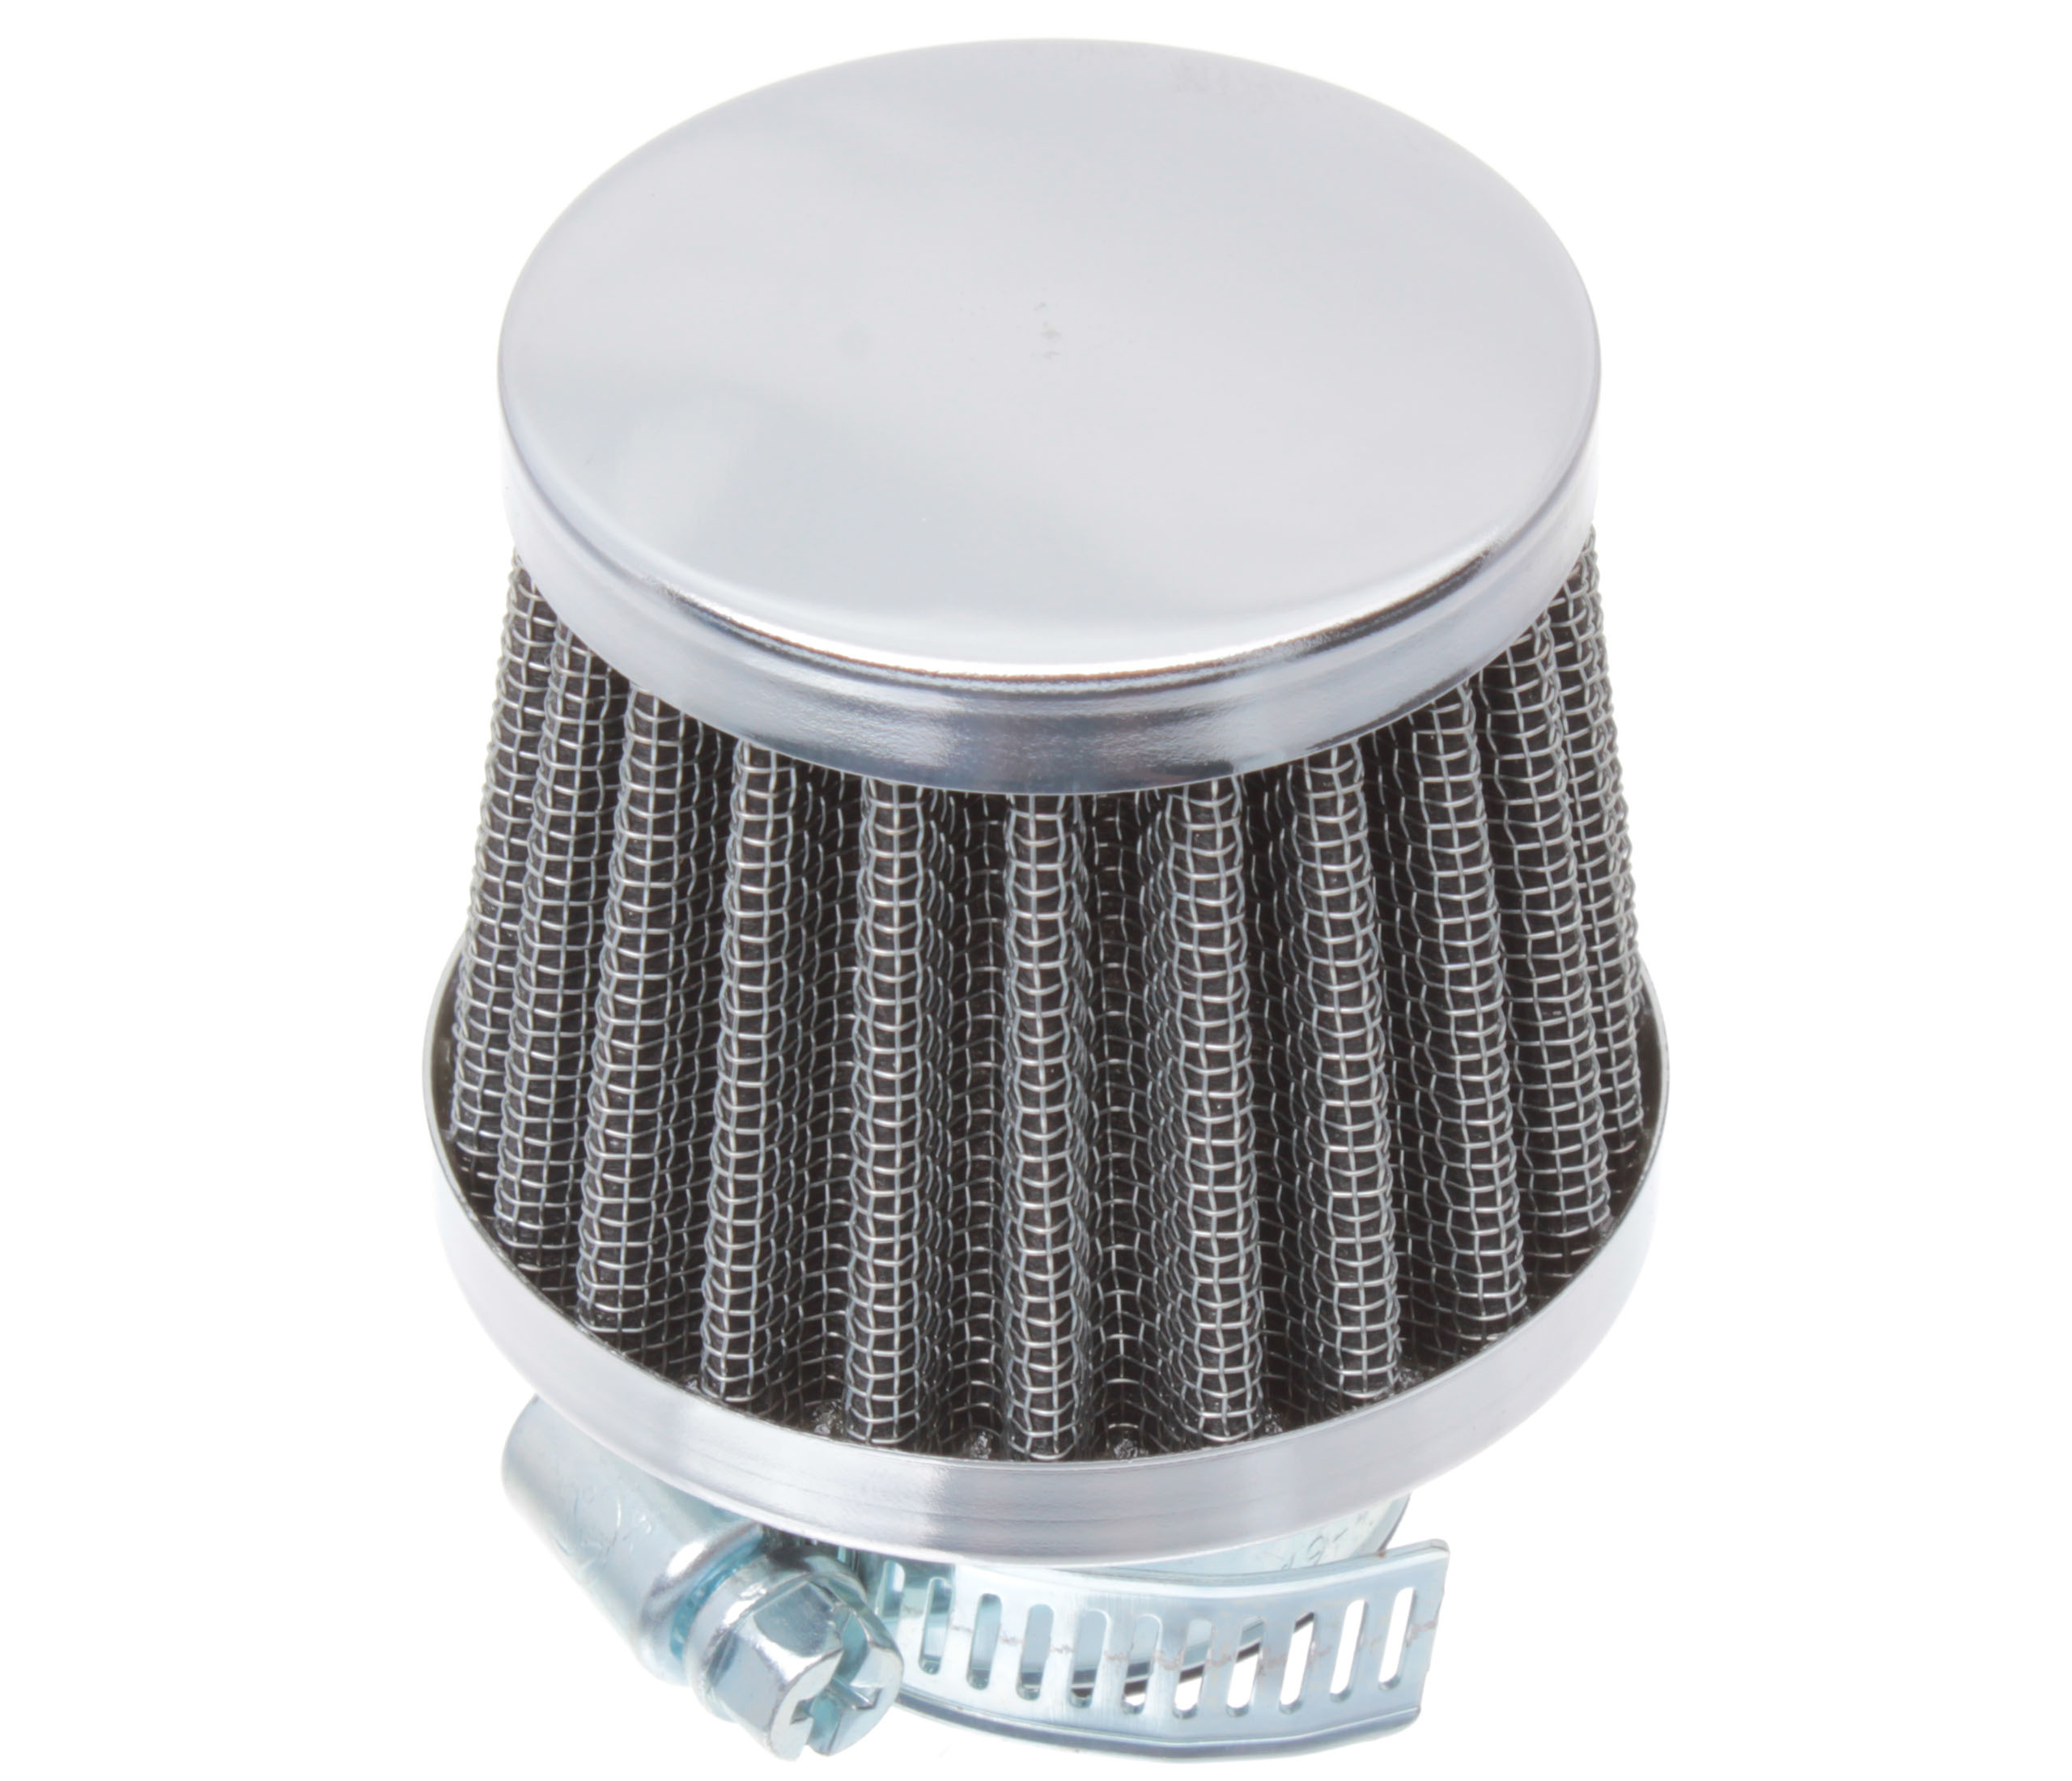 WSK AWO JUNAK TUNING CONE AIR FILTER 38mm